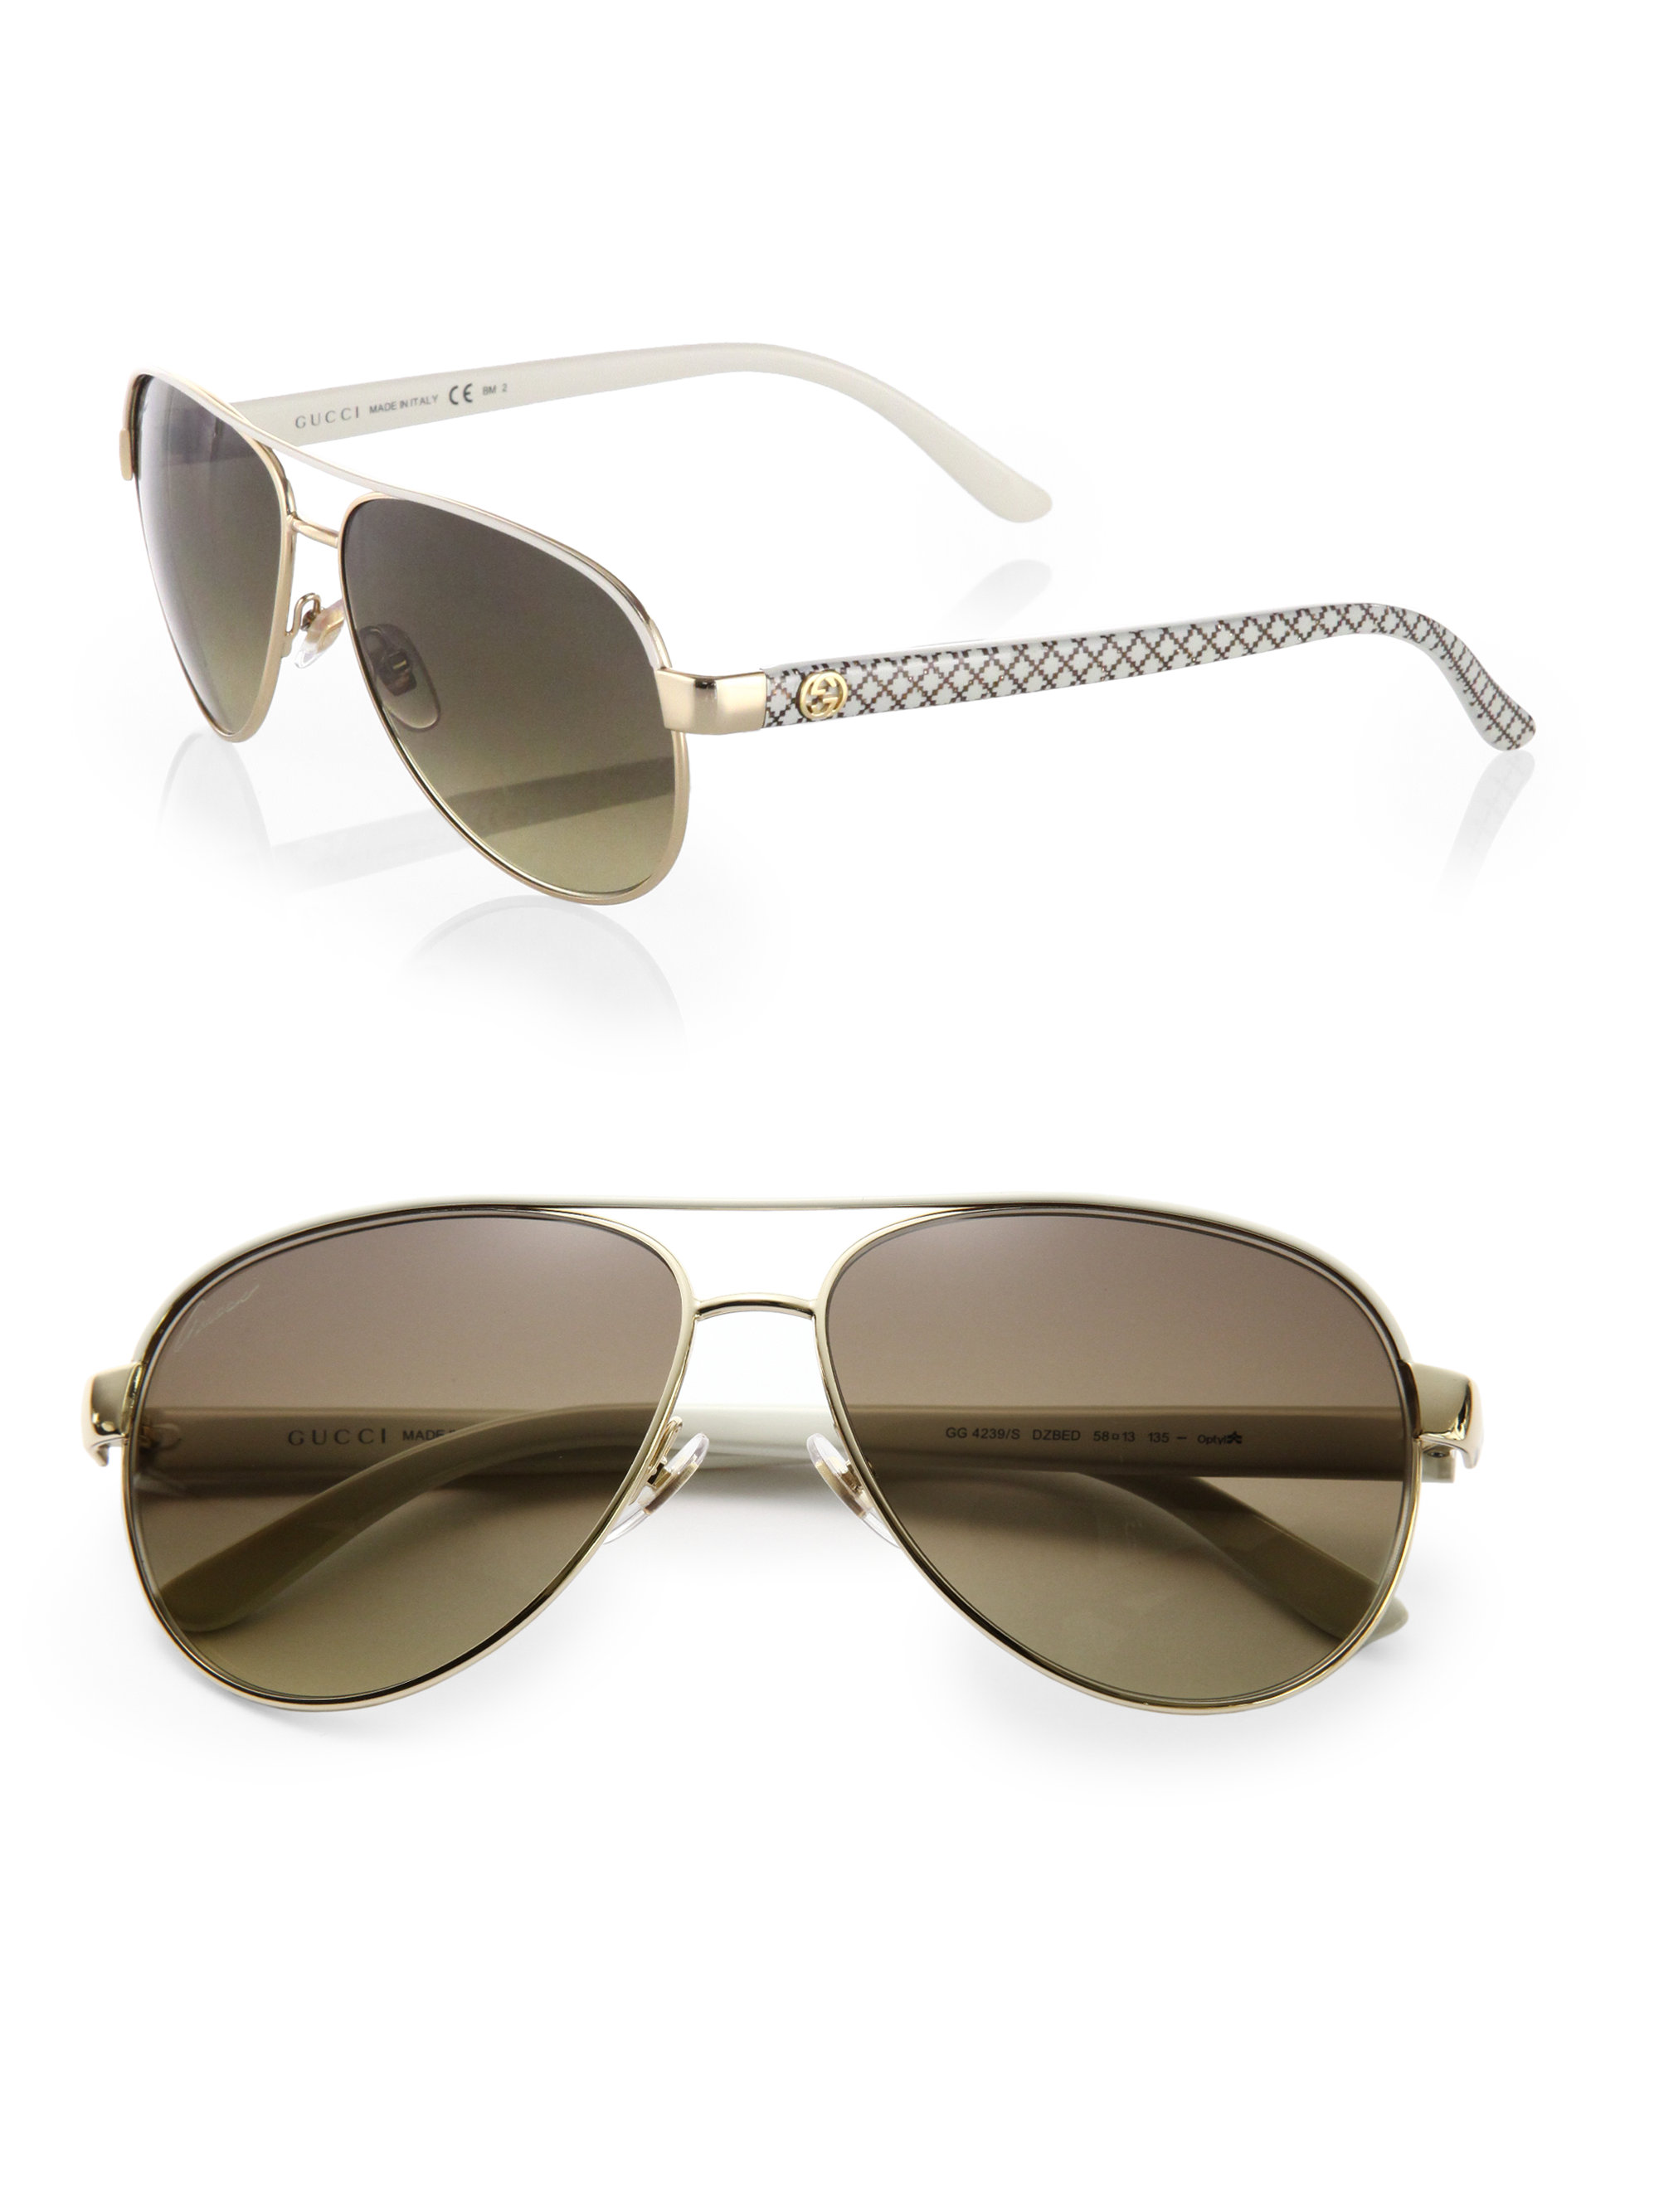 d75d02acd9 Gucci Metal Aviator Glitter Sunglasses in Gray (IVORY)